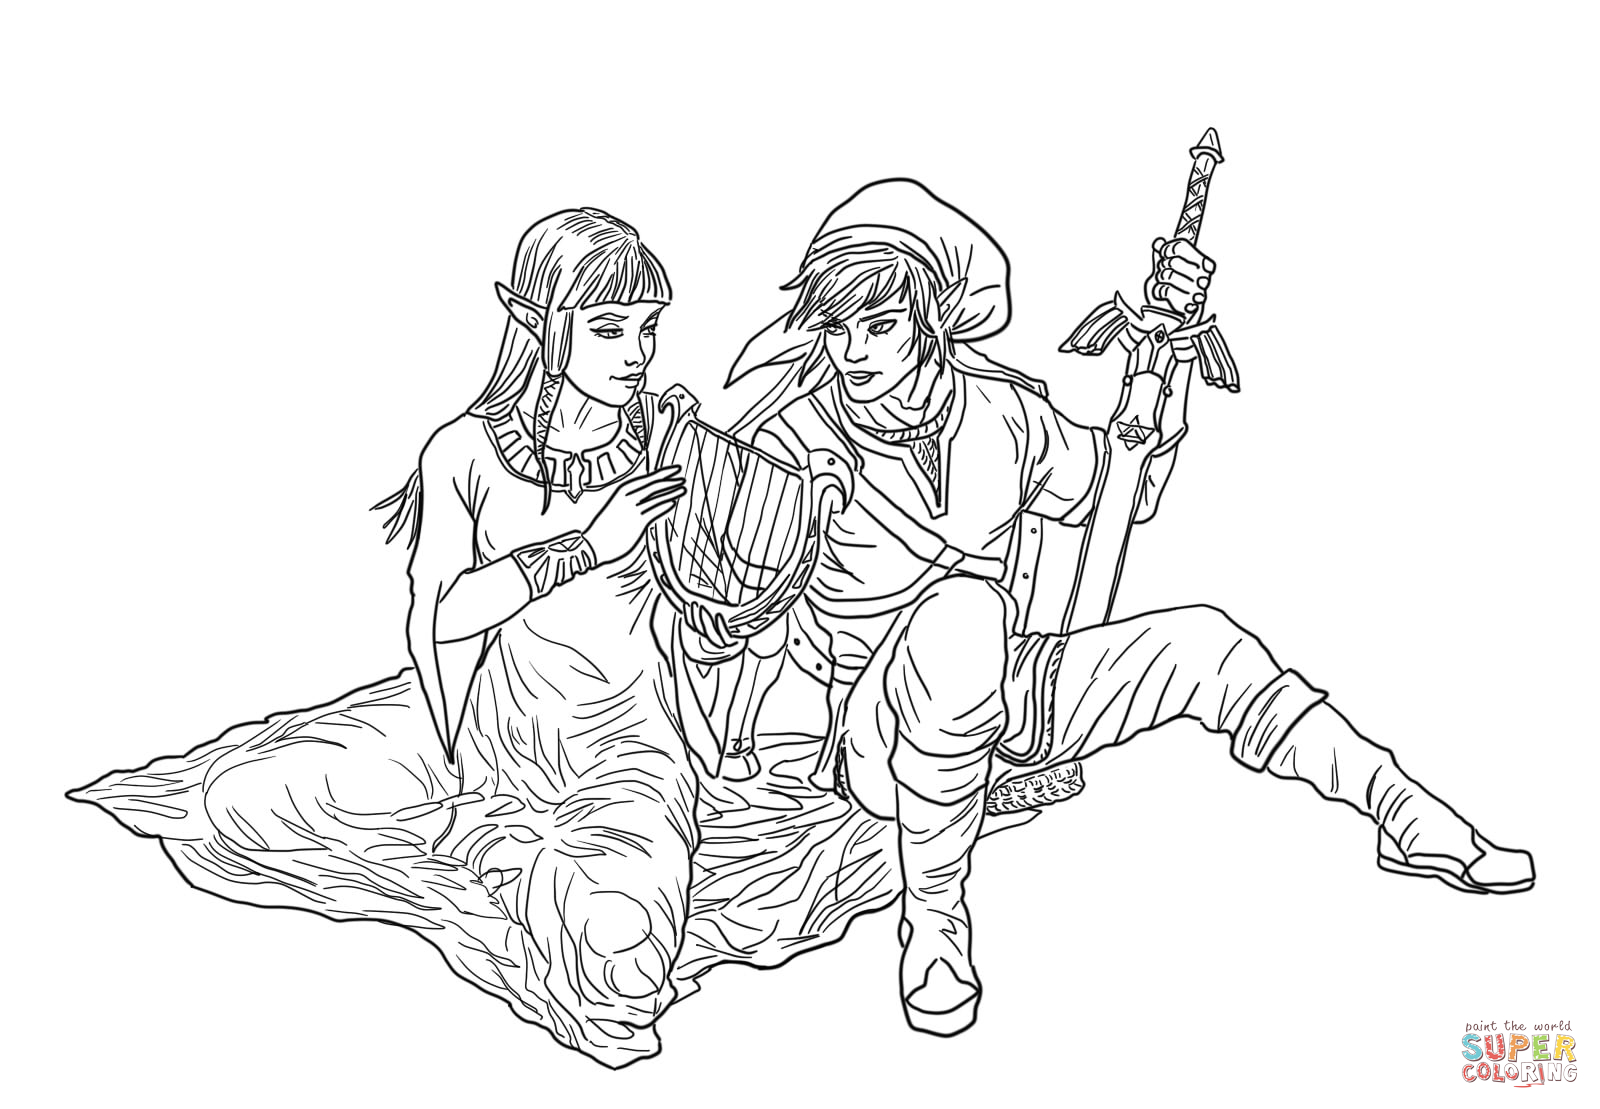 Zelda Twighlight Princess Coloring Pages Only Coloring Pages Link Twilight Princess Coloring Pages Printable